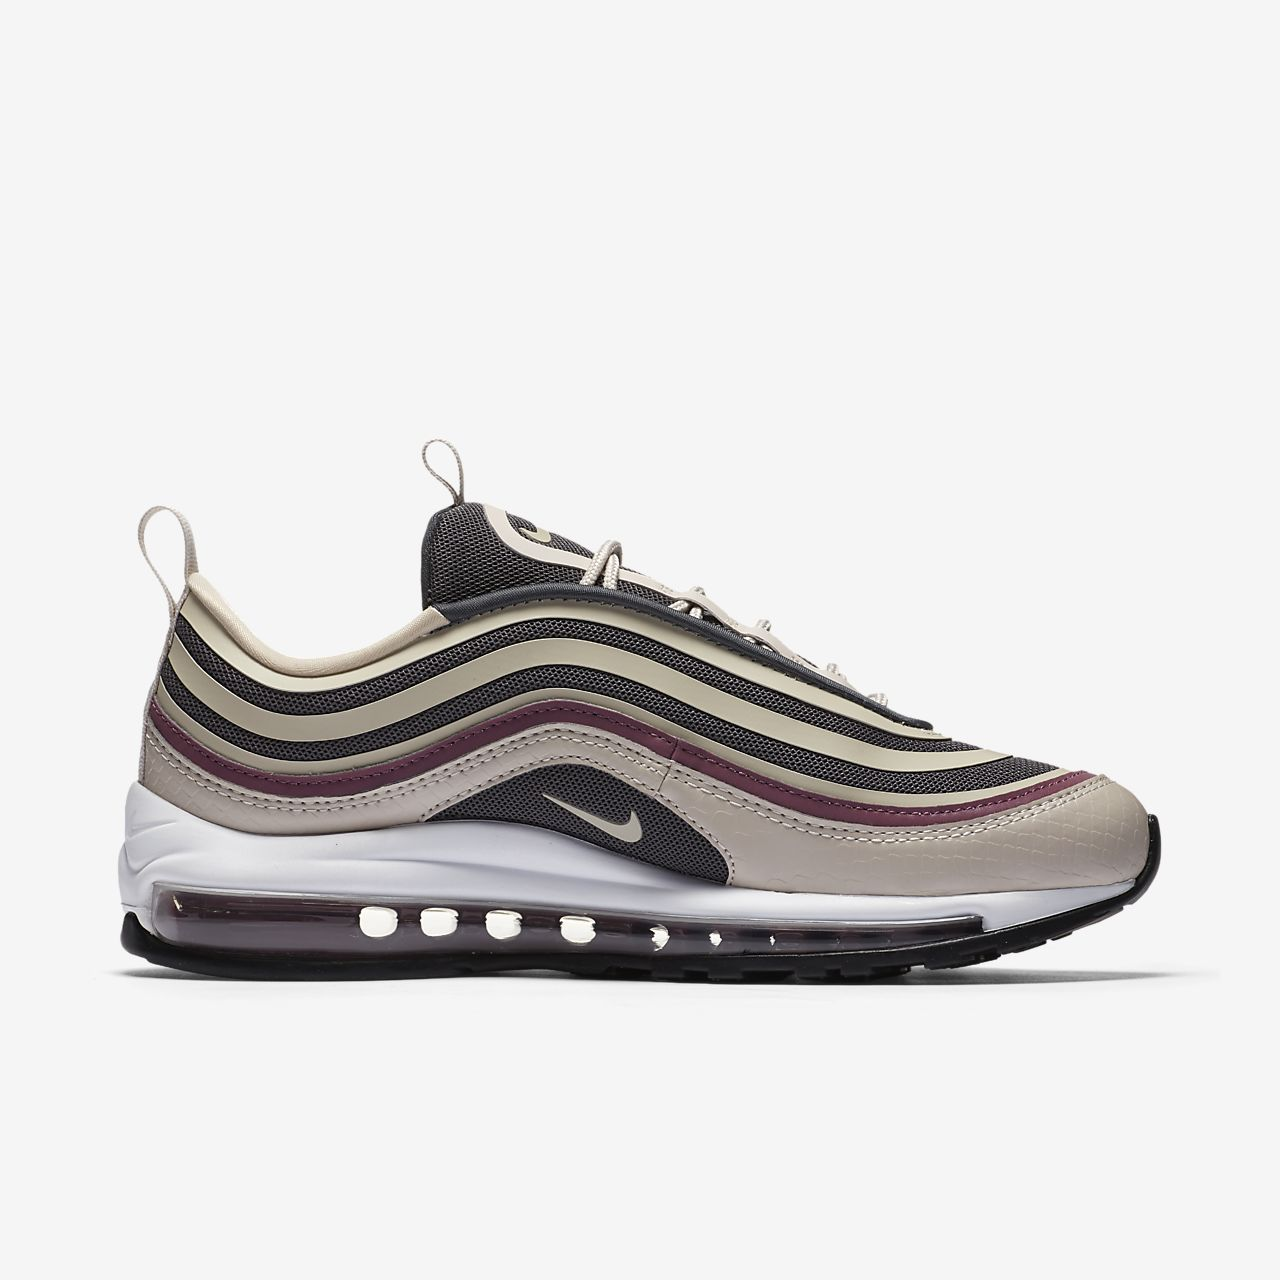 discount cheap price shop offer cheap price NIKE WMNS AIR MAX 97 ULTRA '17 SE buy cheap exclusive free shipping Inexpensive cheapest price cheap price T96G5HMUB